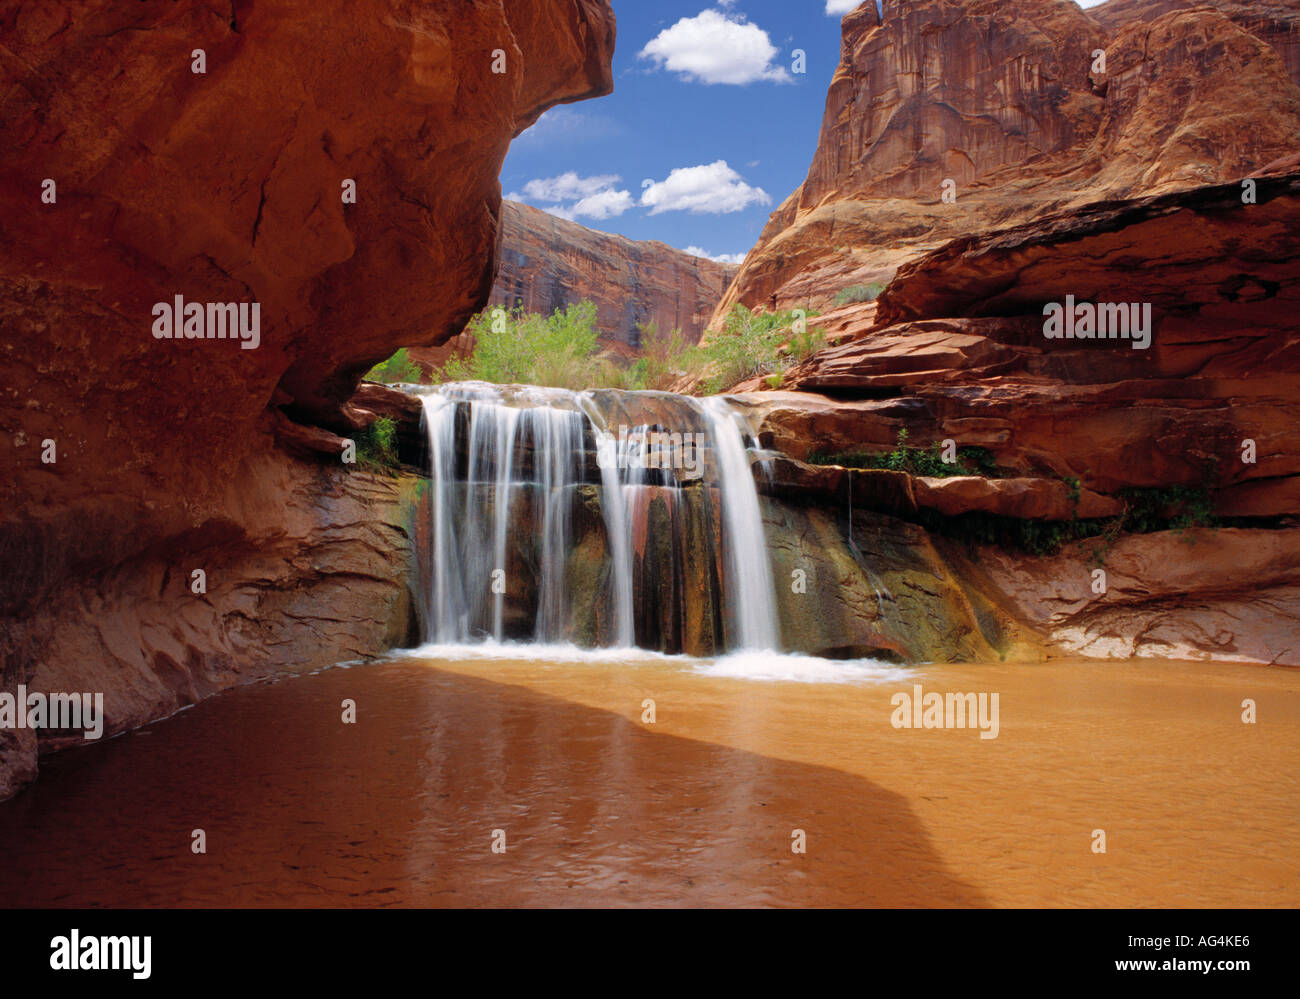 Waterfall In Coyote Gulch Part Of Grand Staircase Escalante National